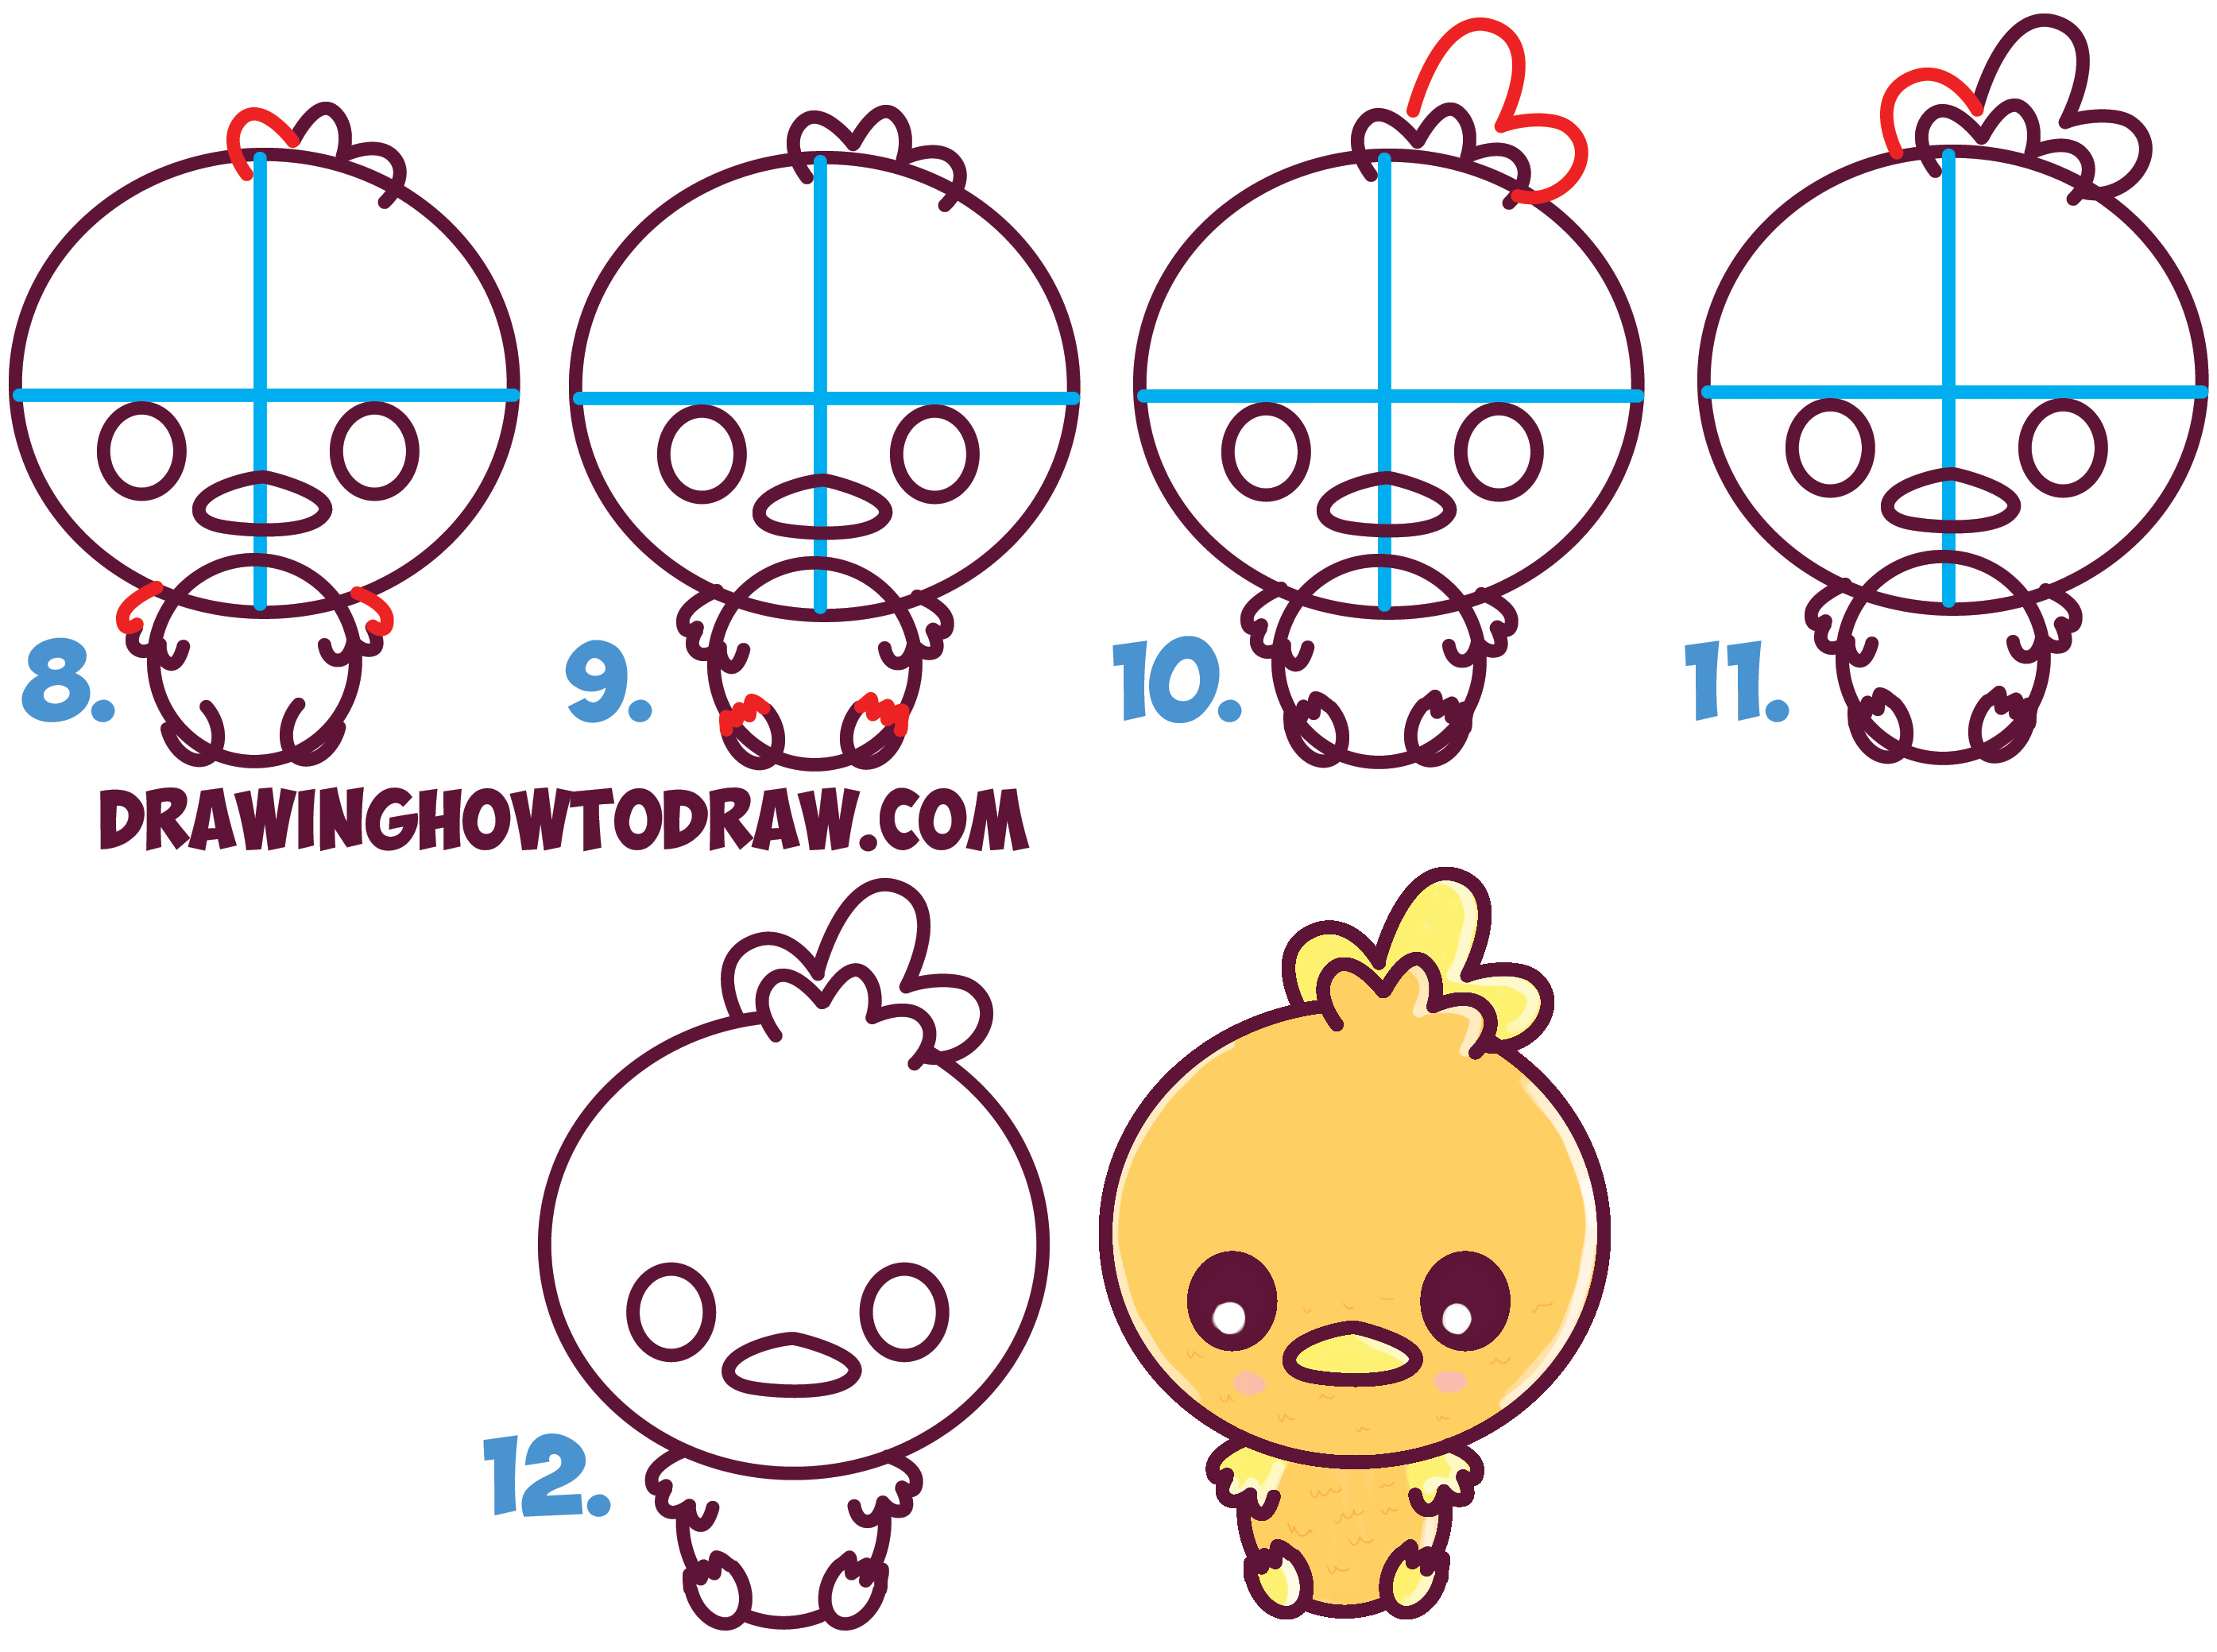 Cute chibi pokemon images pokemon images for Free online drawing lessons step by step